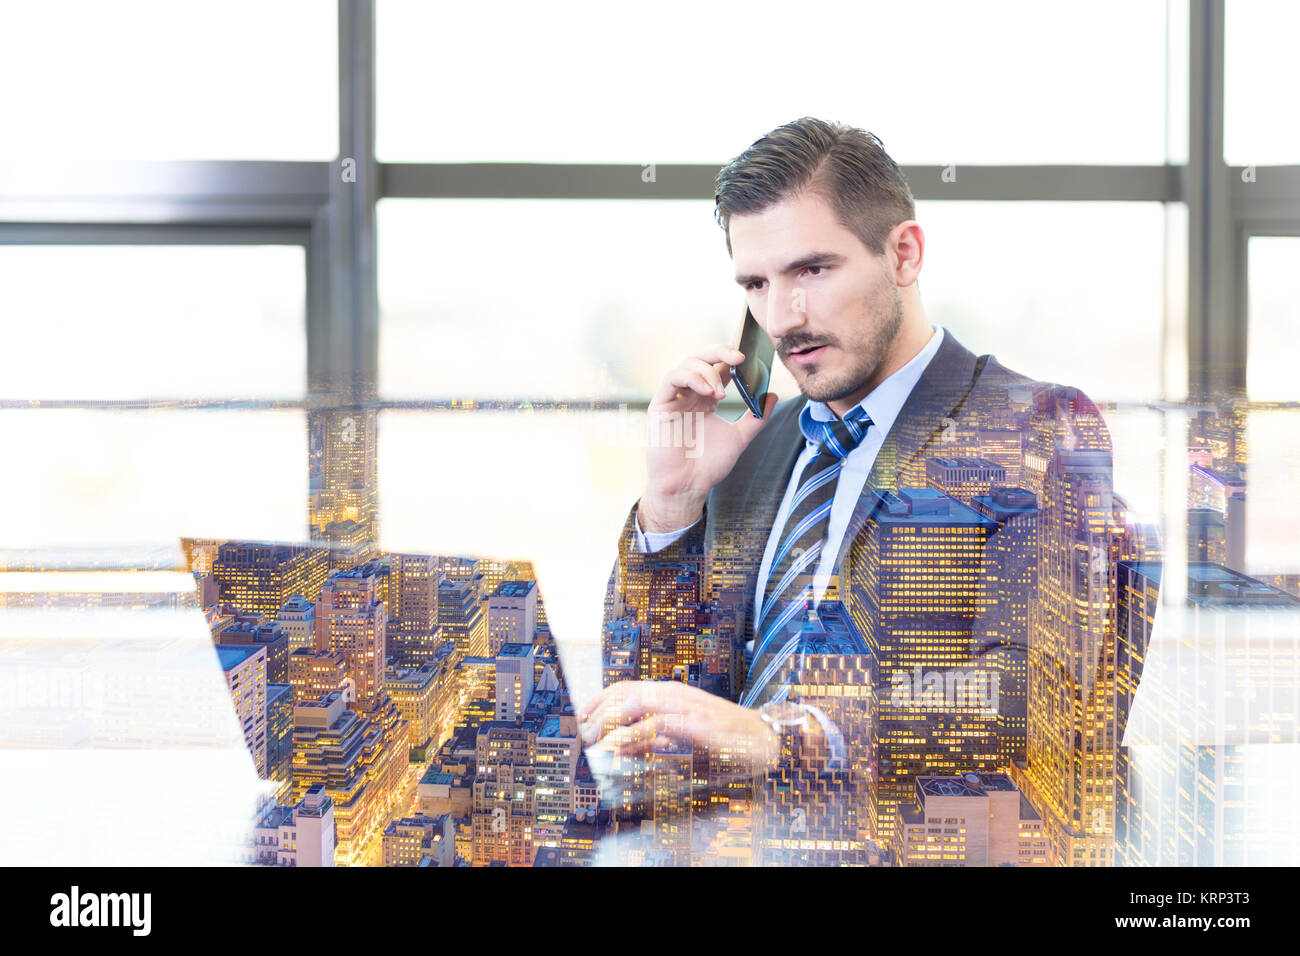 Businessman in office working on laptop computer. - Stock Image